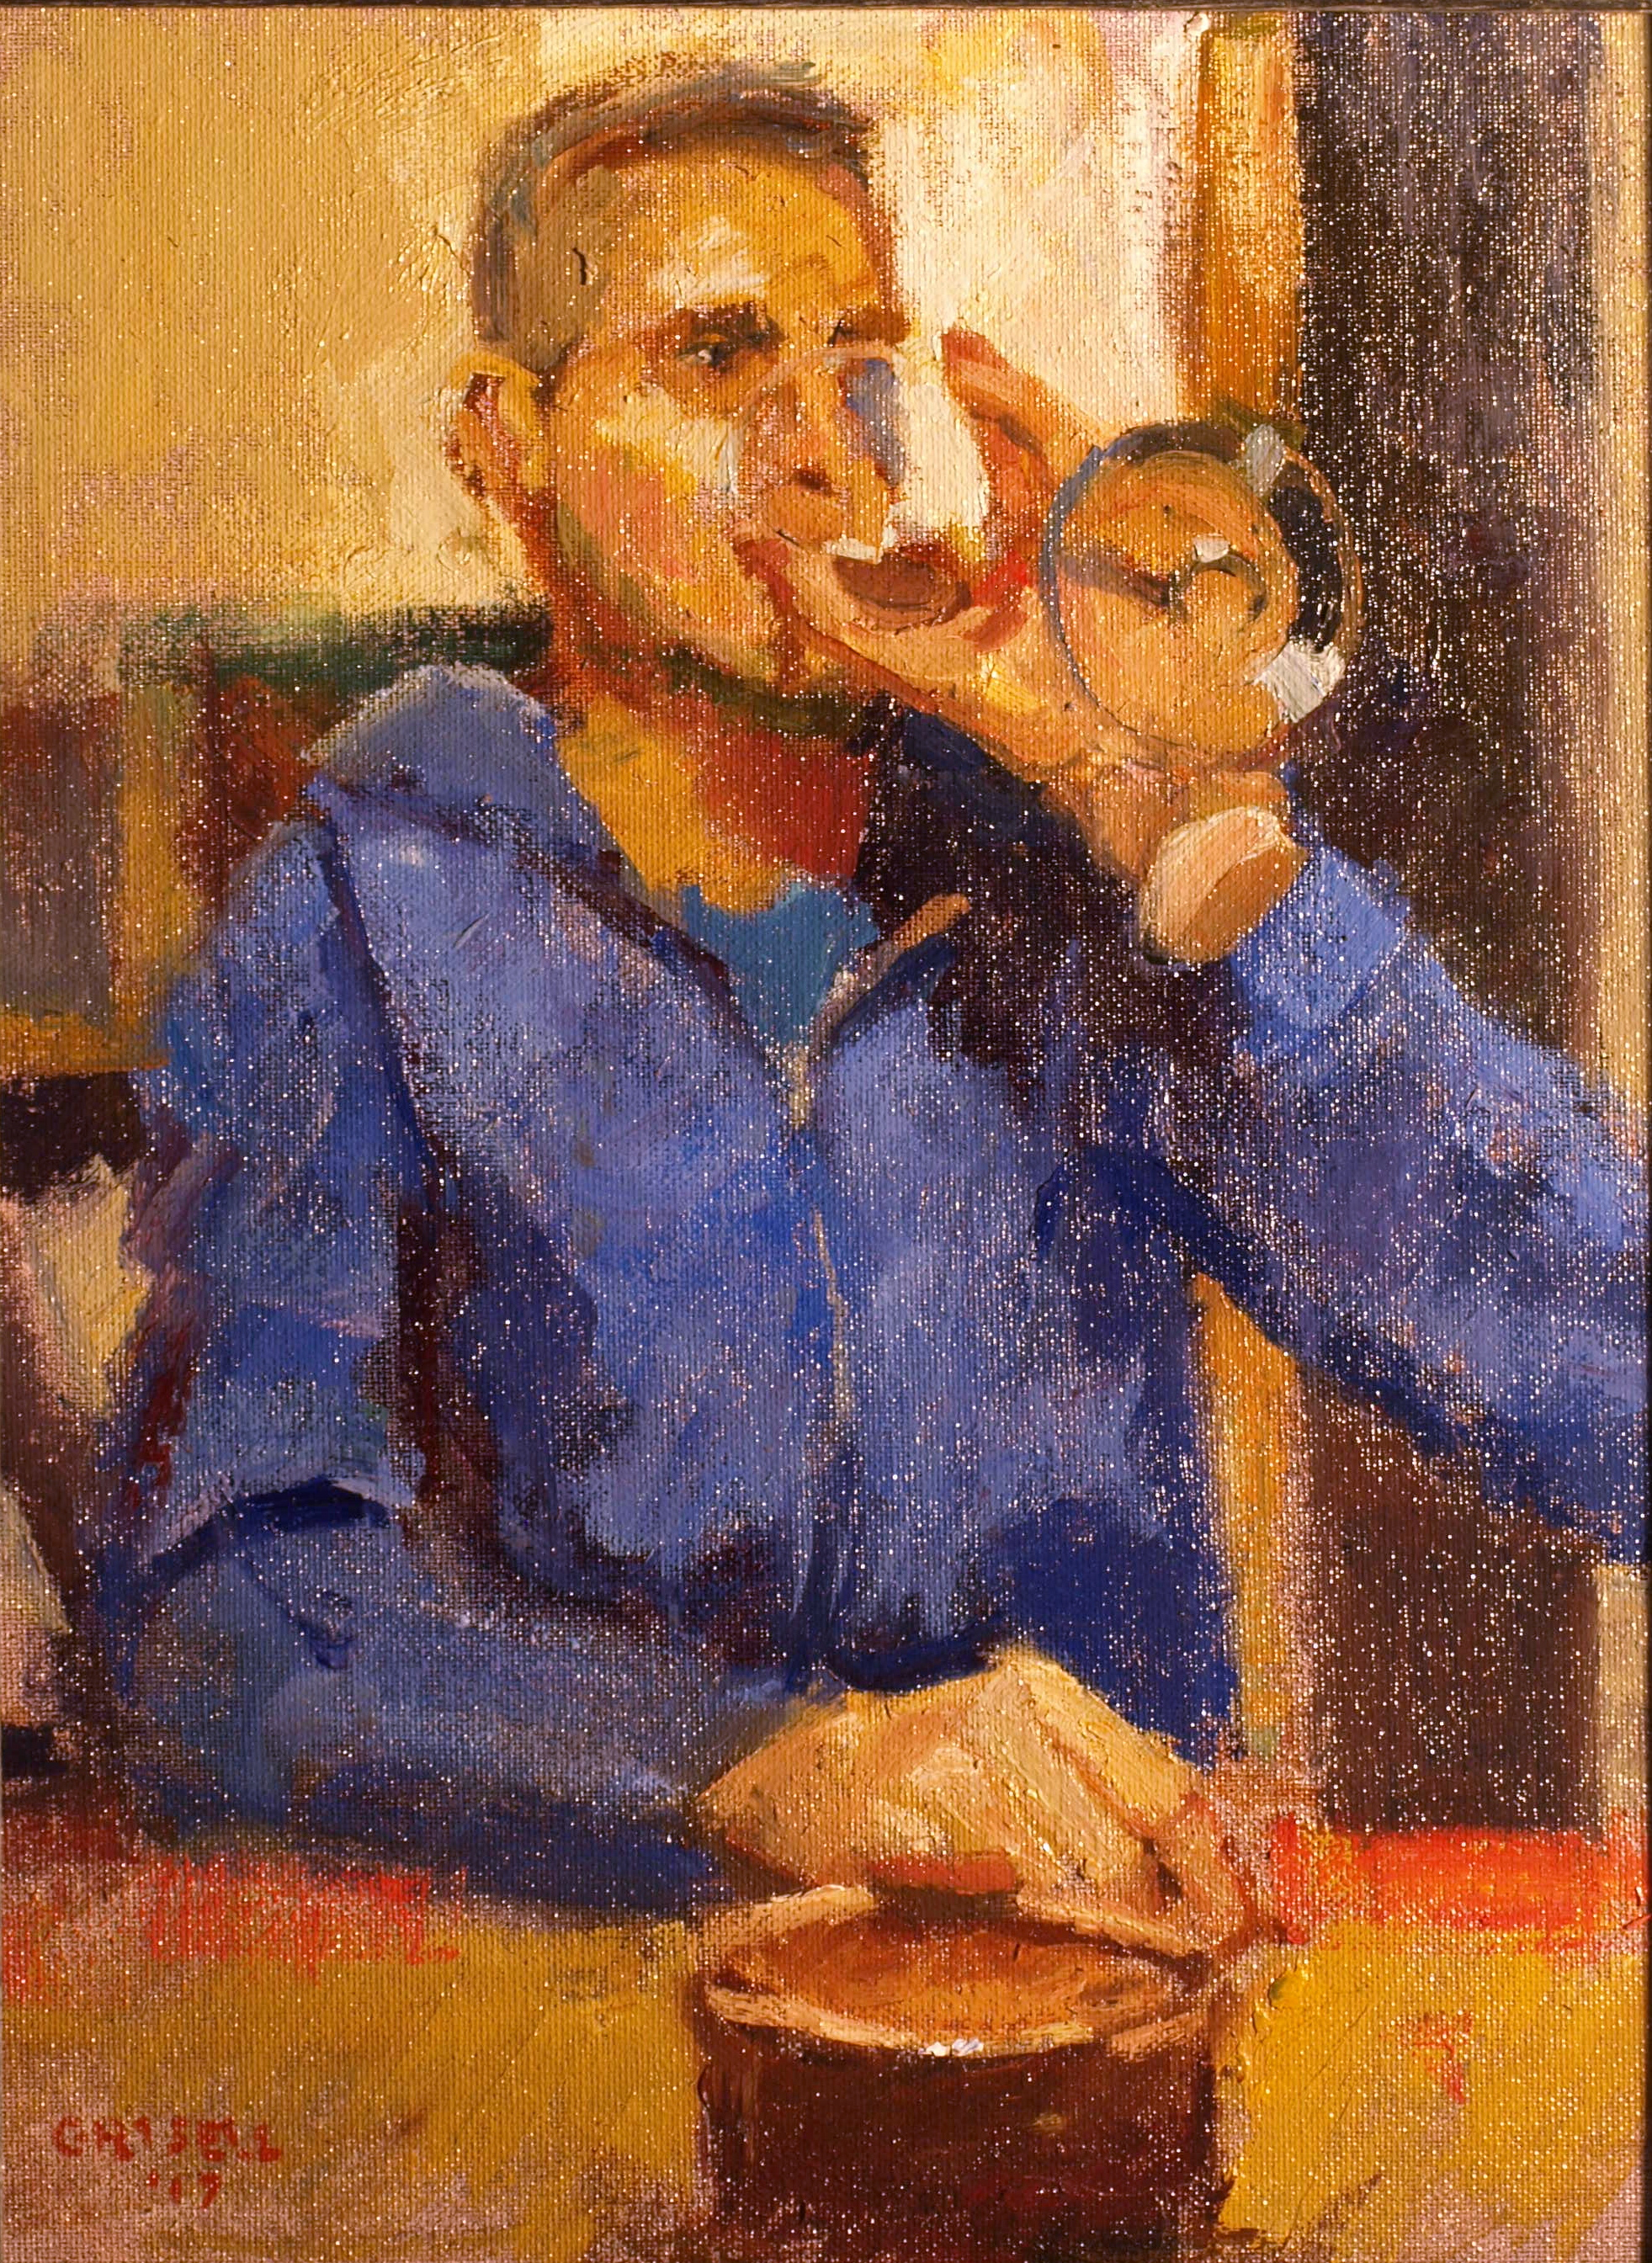 A Glass of Wine, Oil on Canvas on Panel, 16 x 12 Inches, by Susan Grisell, $300